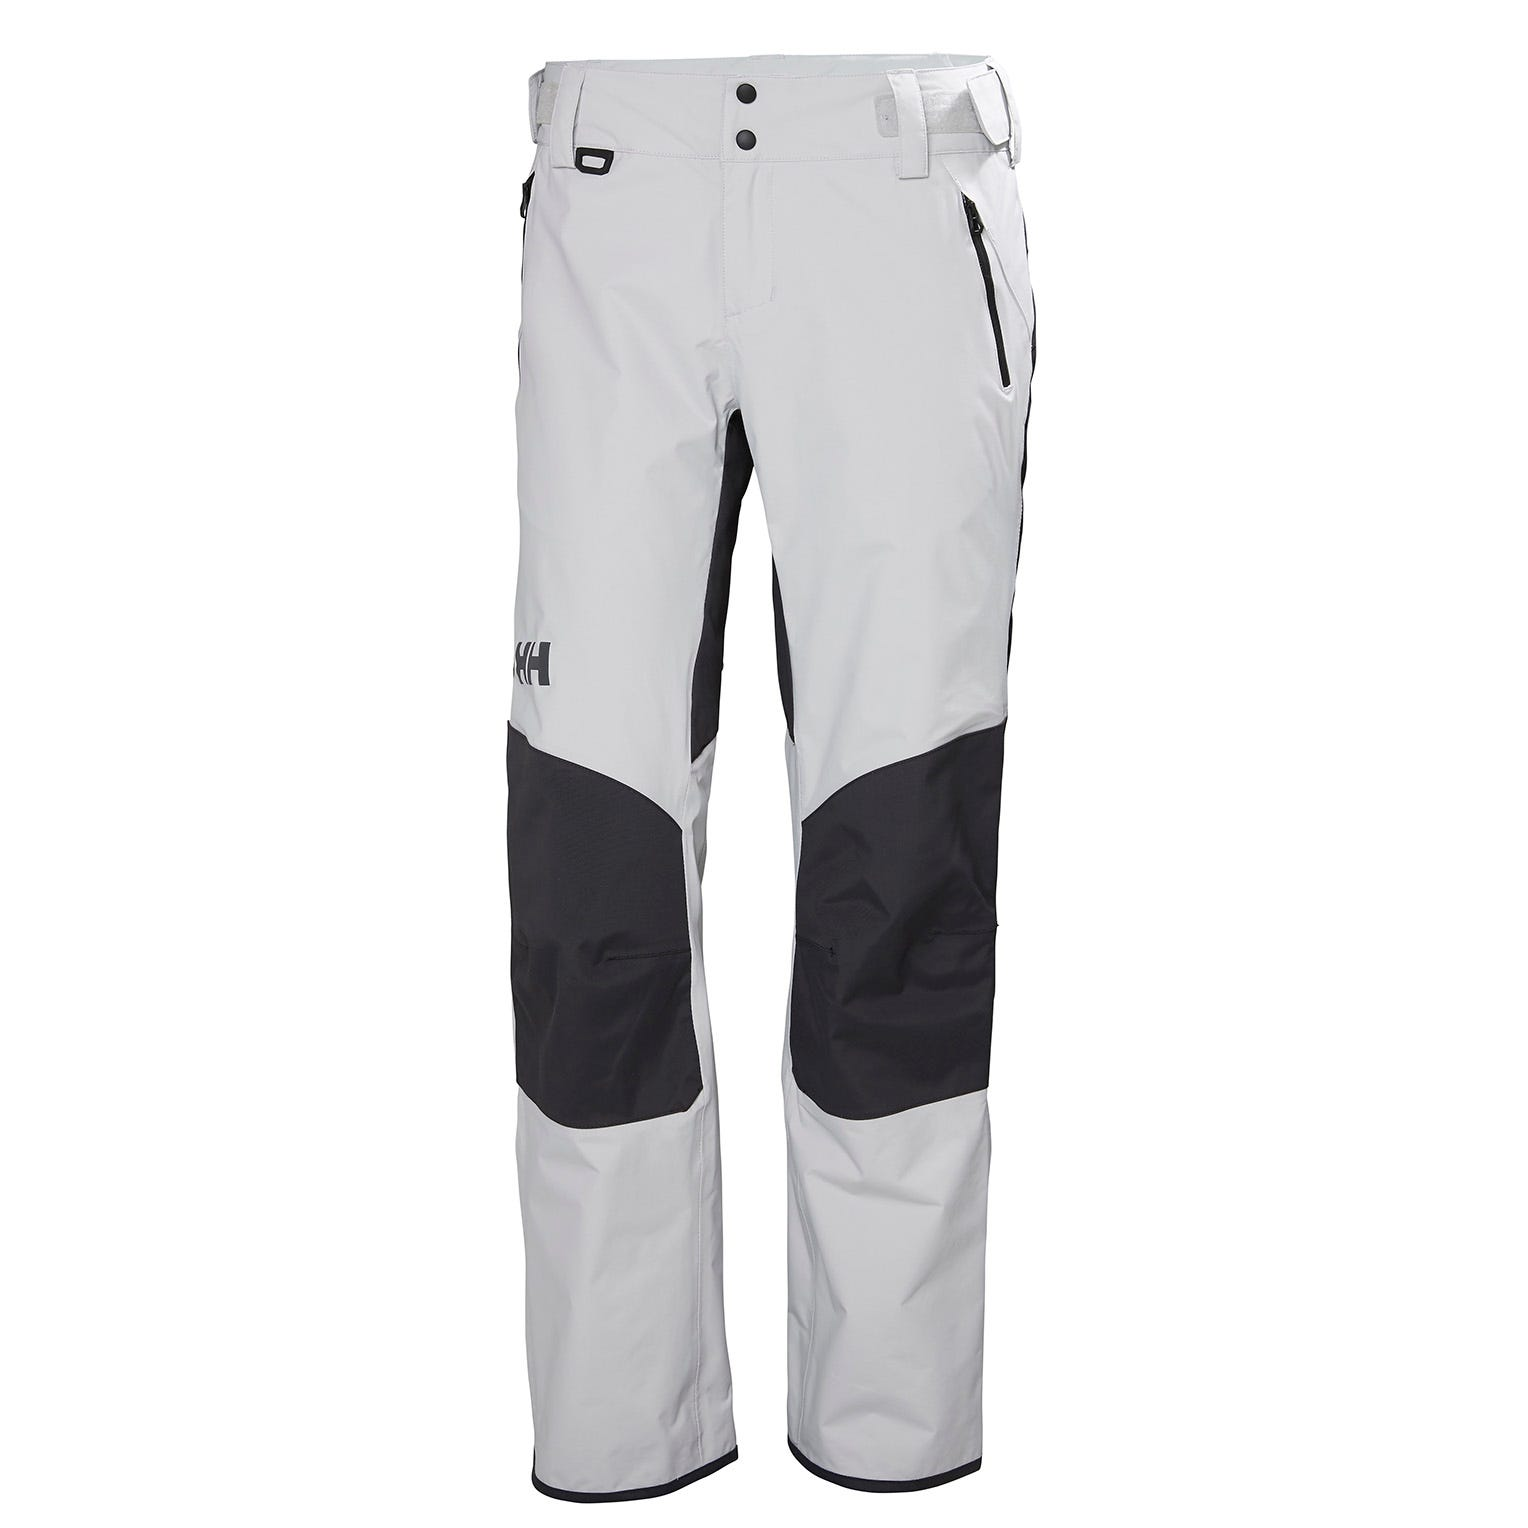 Helly Hansen Womens Hp Foil Sailing Trouser Grey L